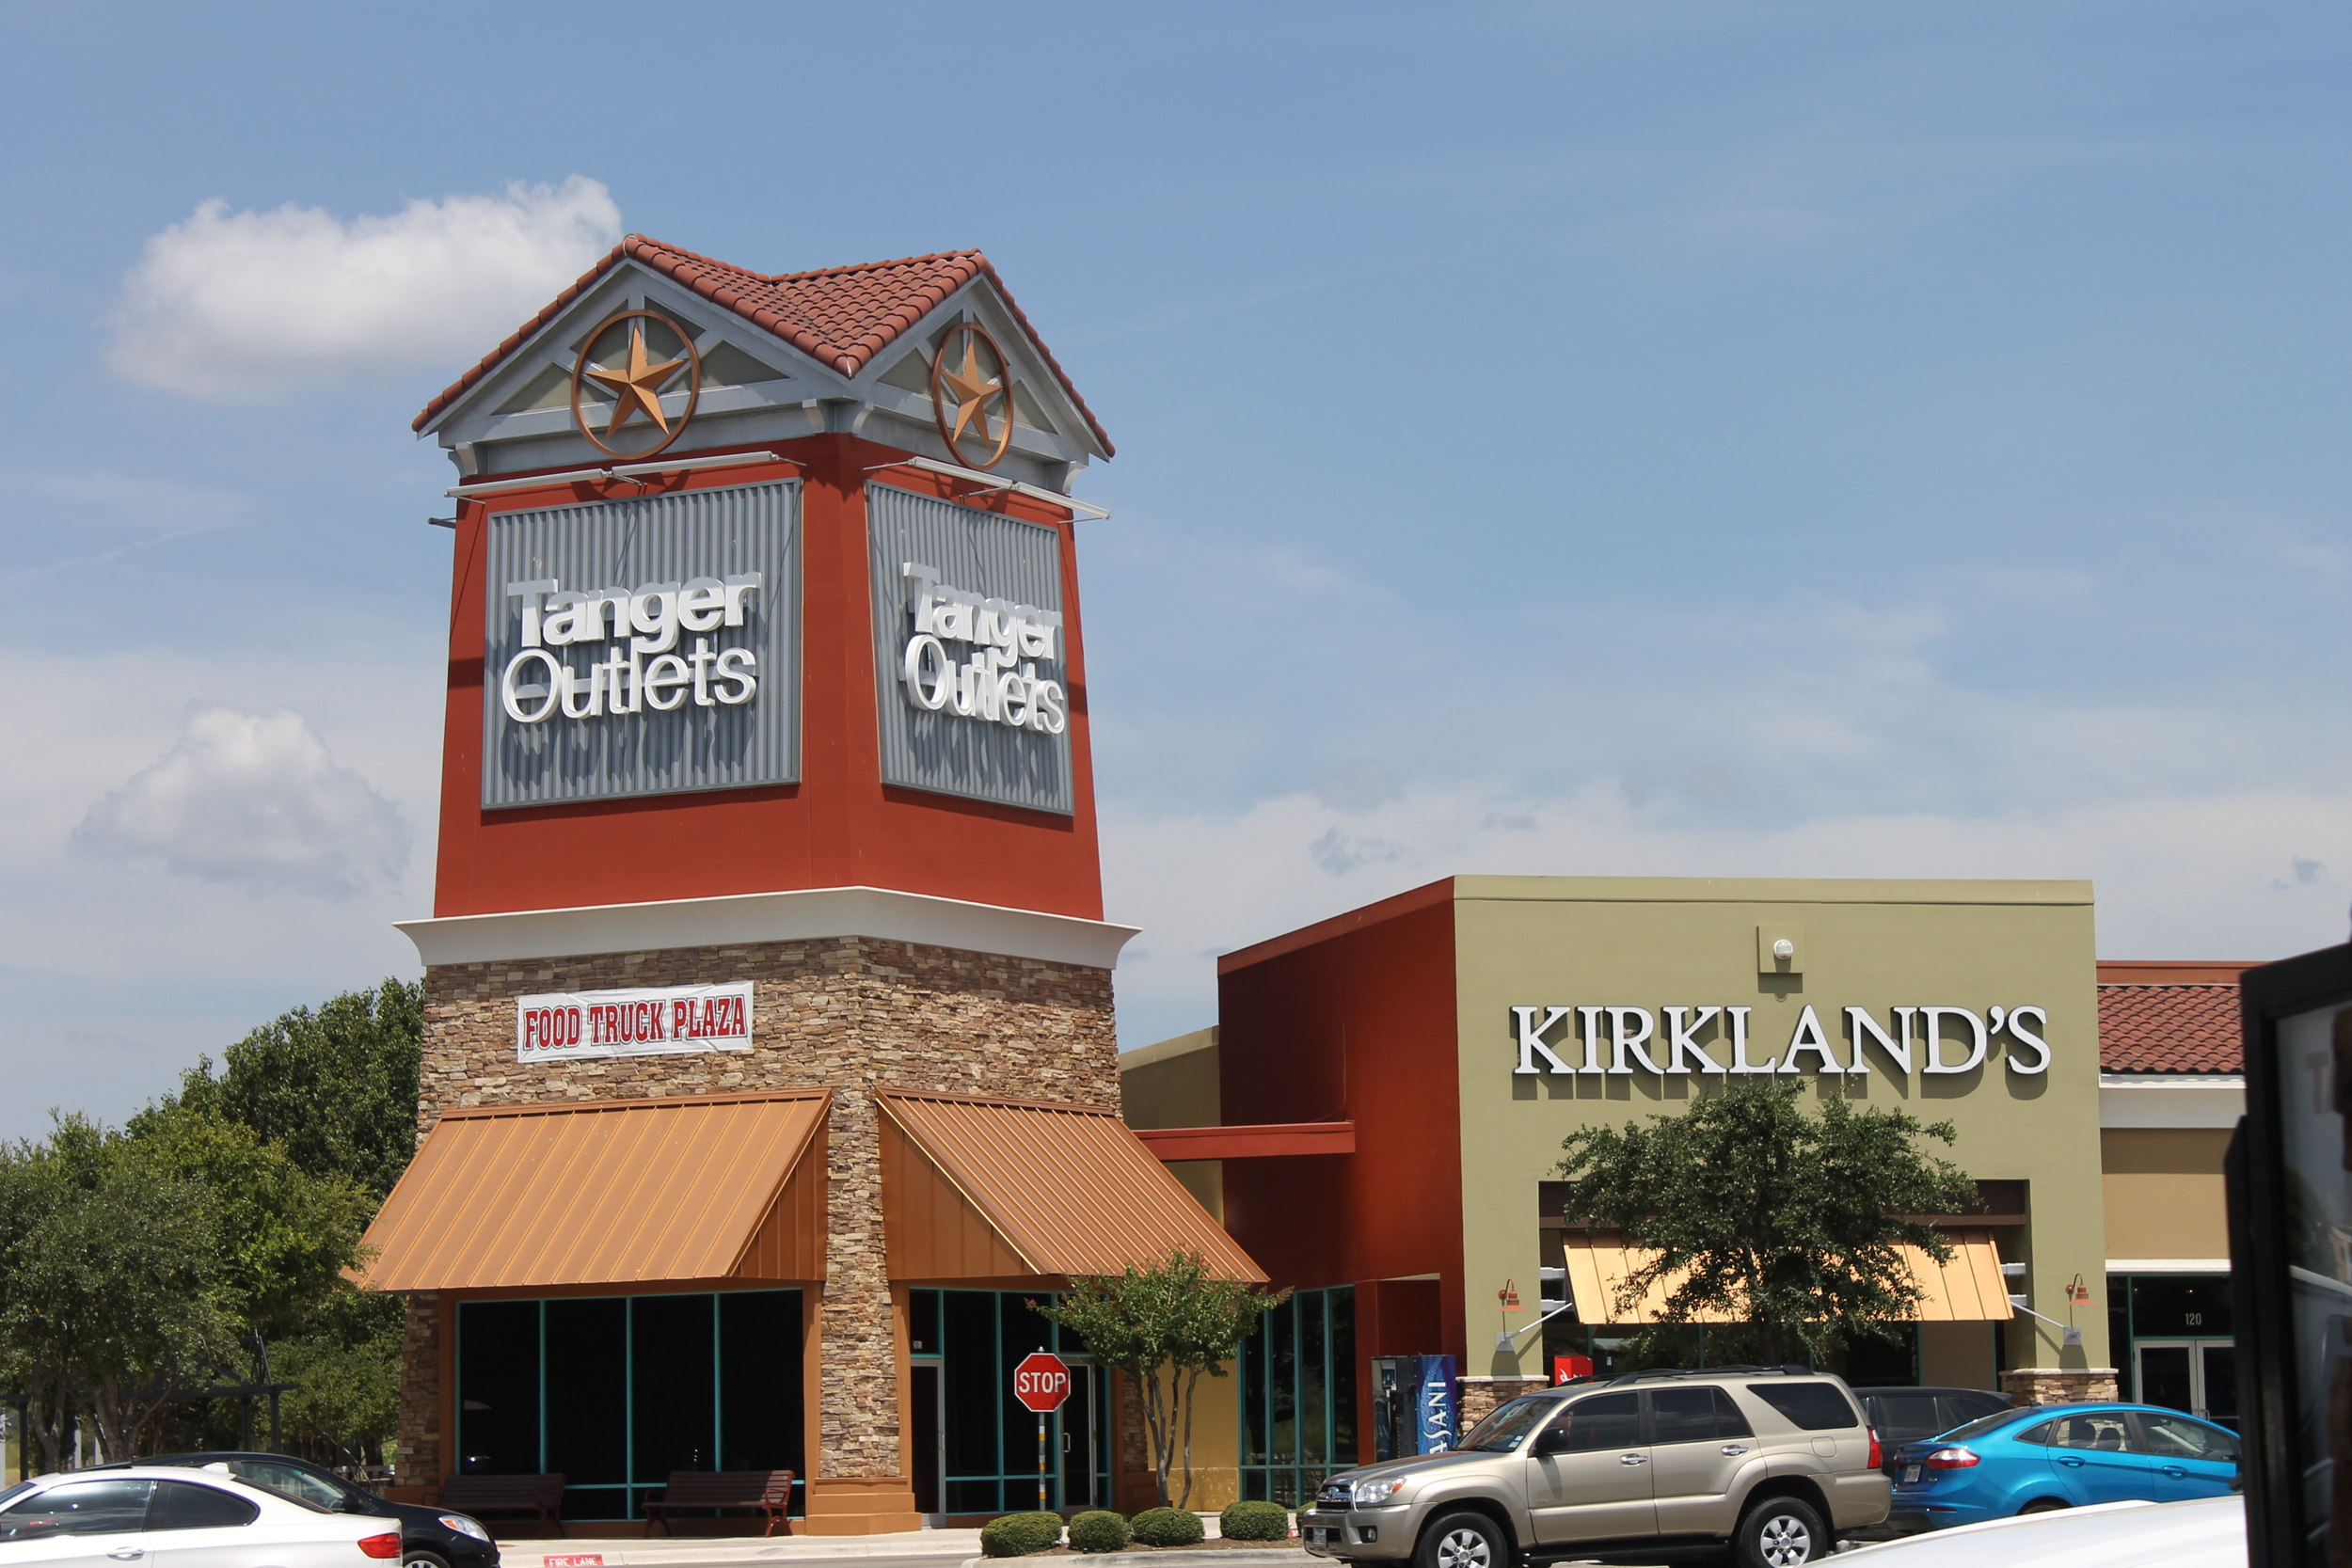 Tanger_Outlets,_San_Marcos,_TX_IMG_3243.JPG